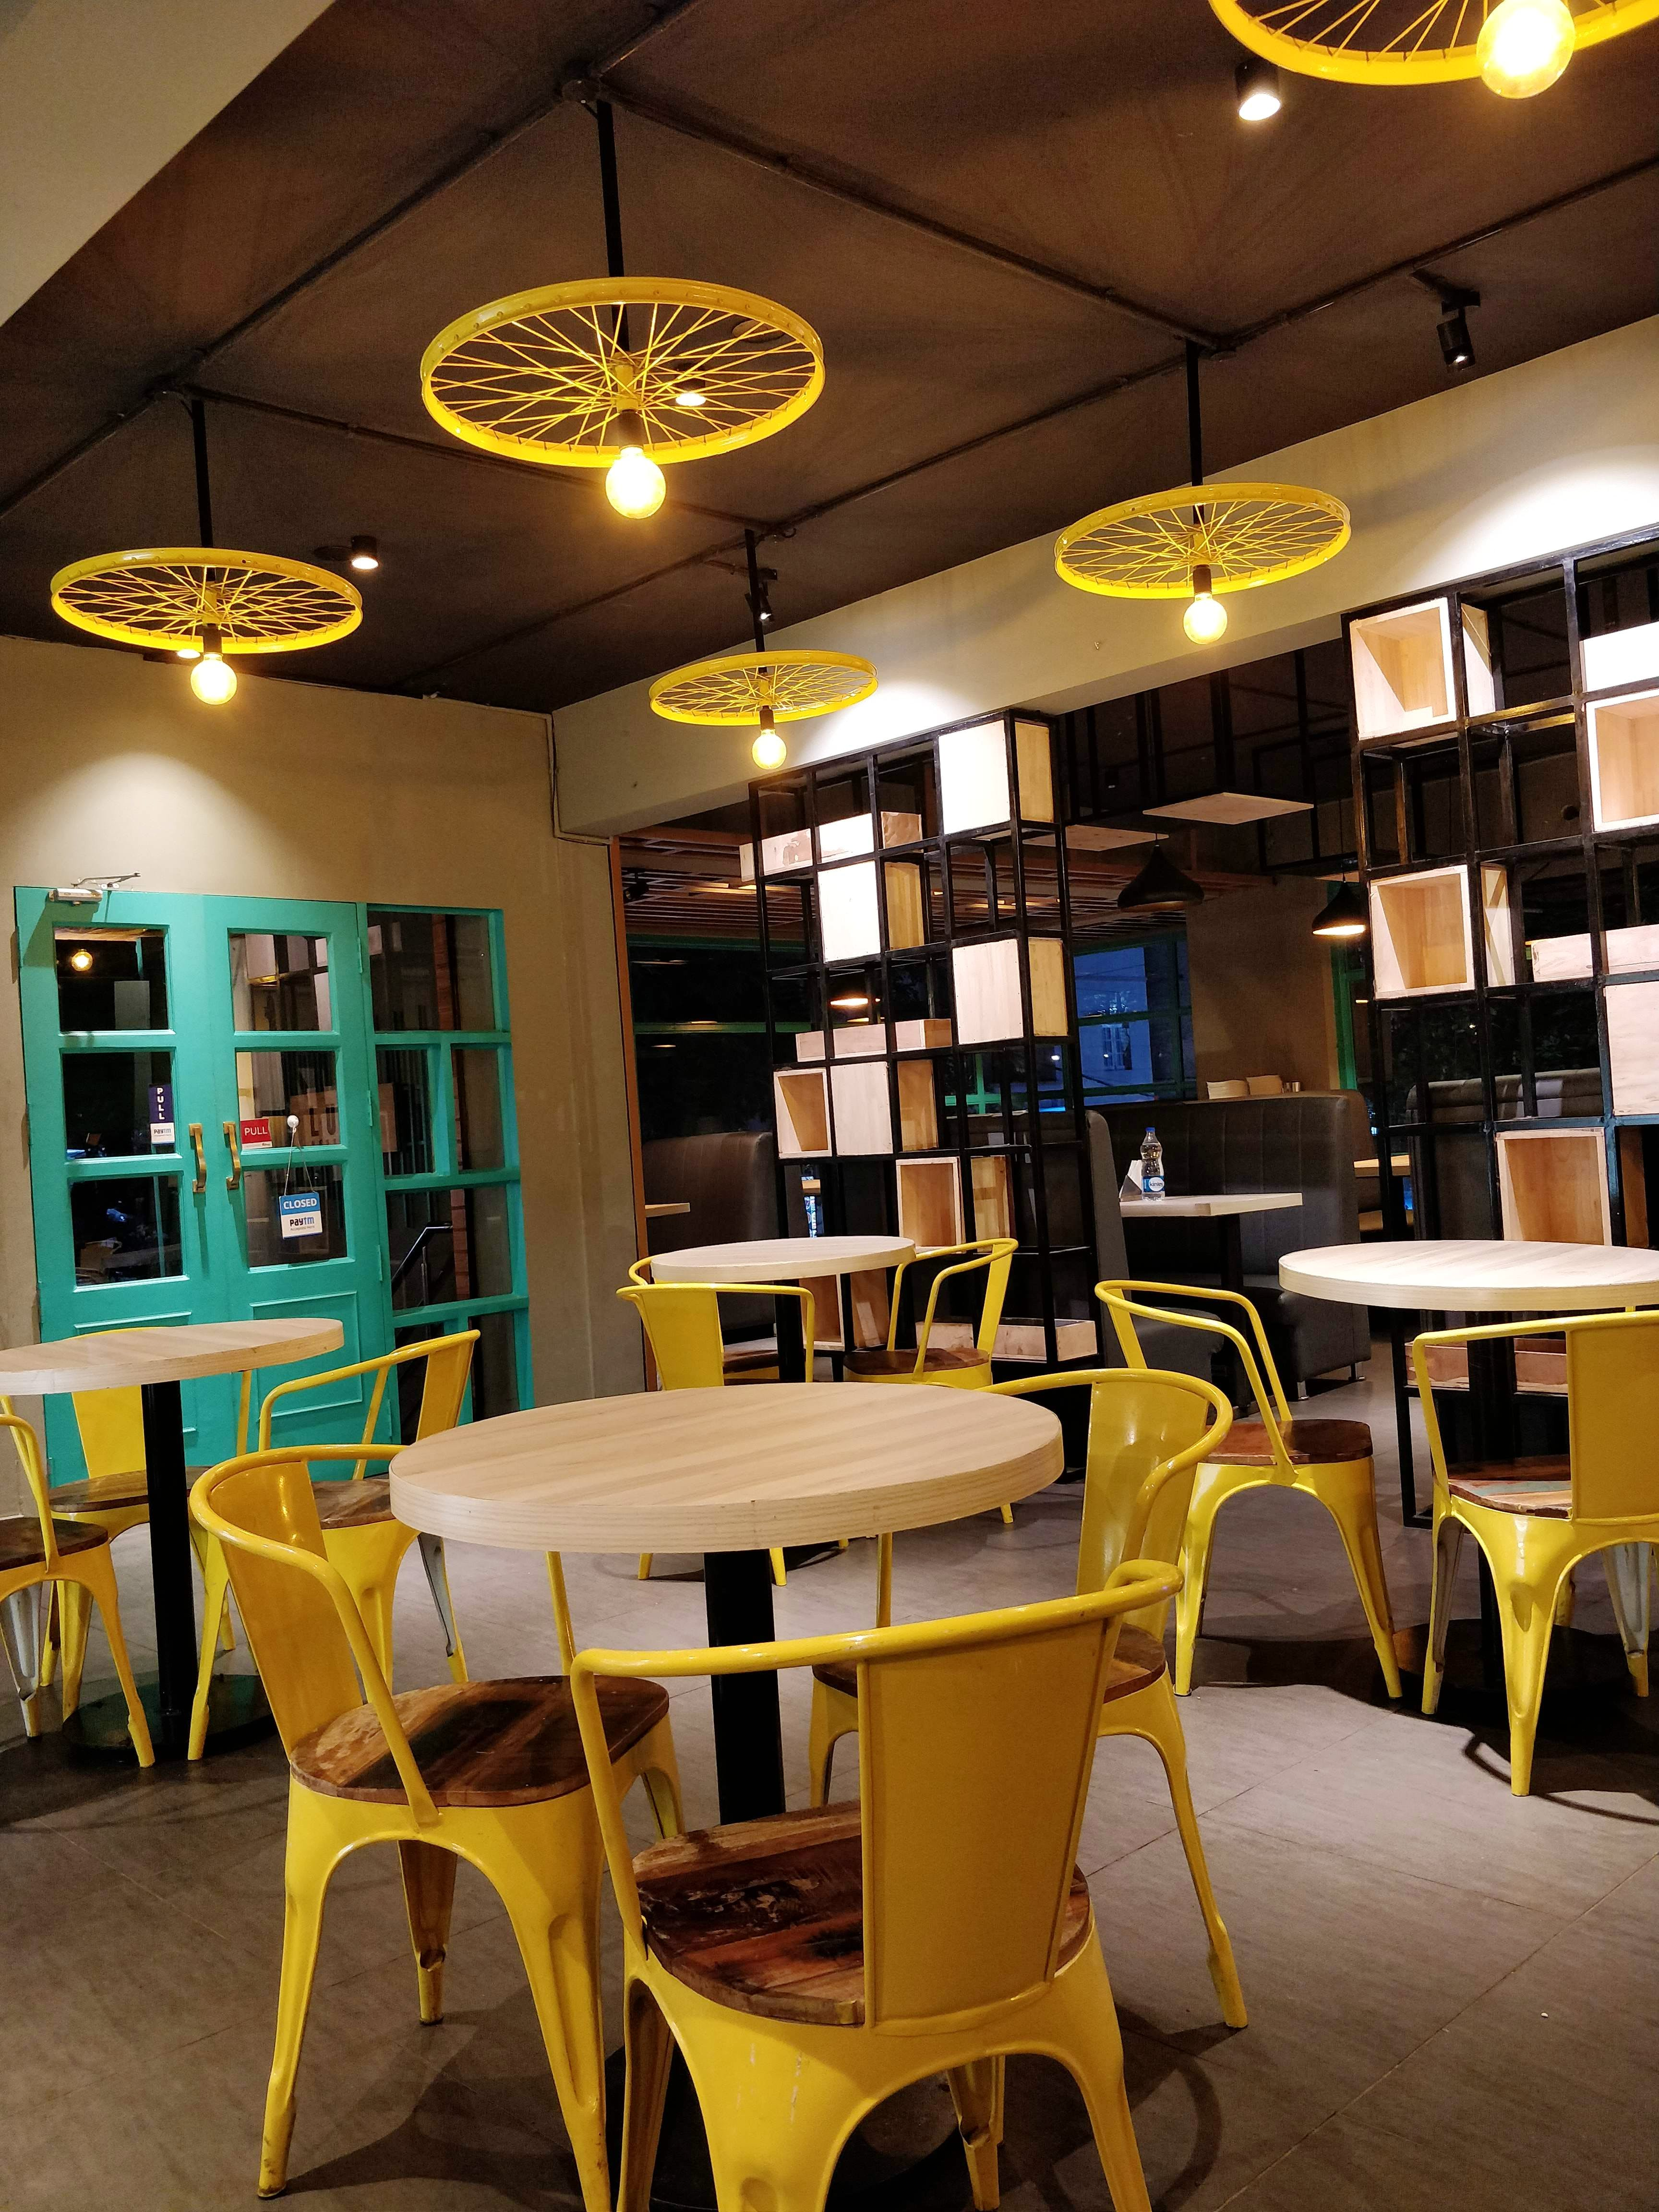 This New Cafe Has A Hold Of All Of Major Cuisines With Pretty Interiors